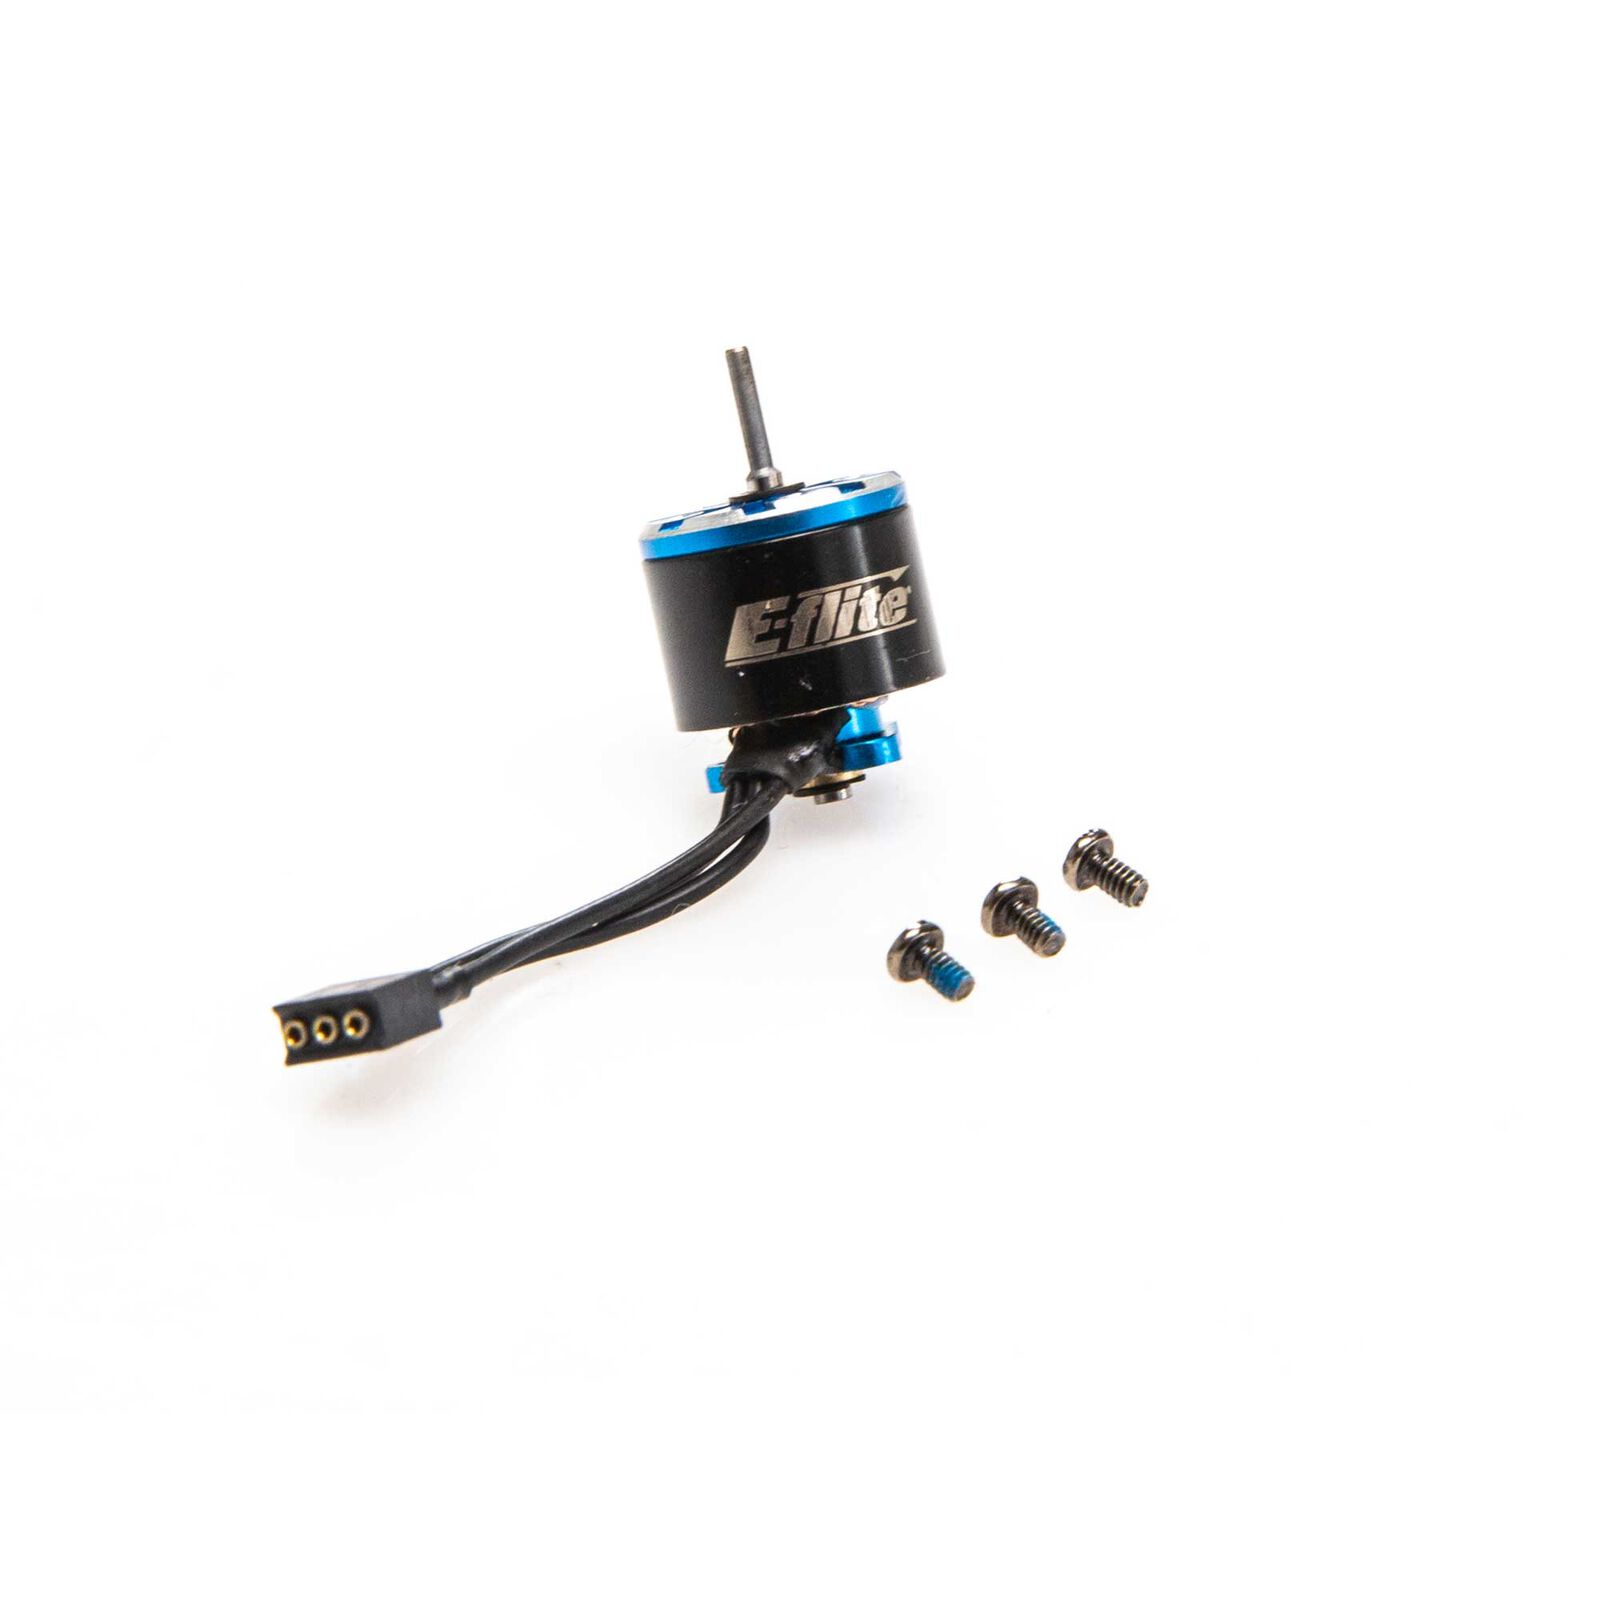 Brushless Tail Motor: mCPX BL2